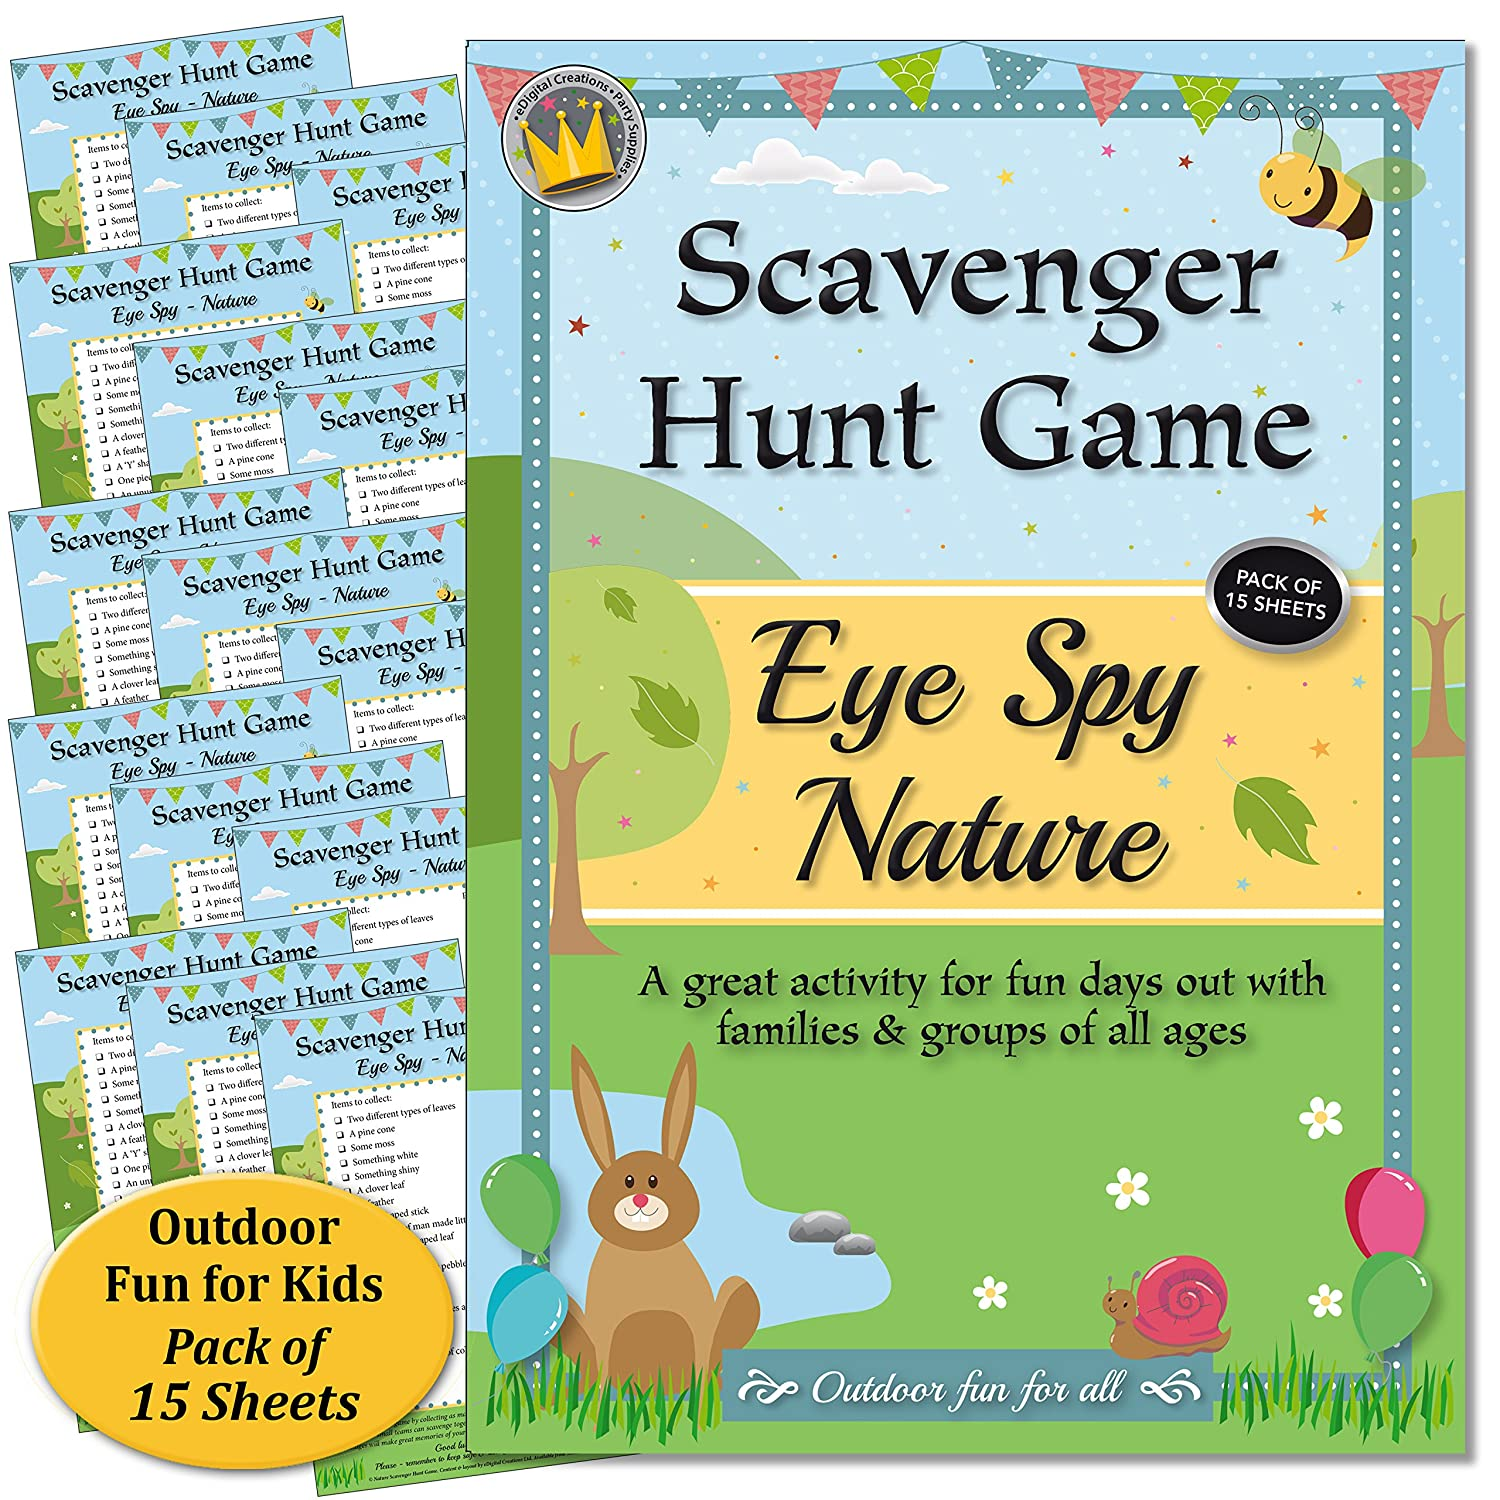 gofindit outdoor nature treasure hunt card game for families